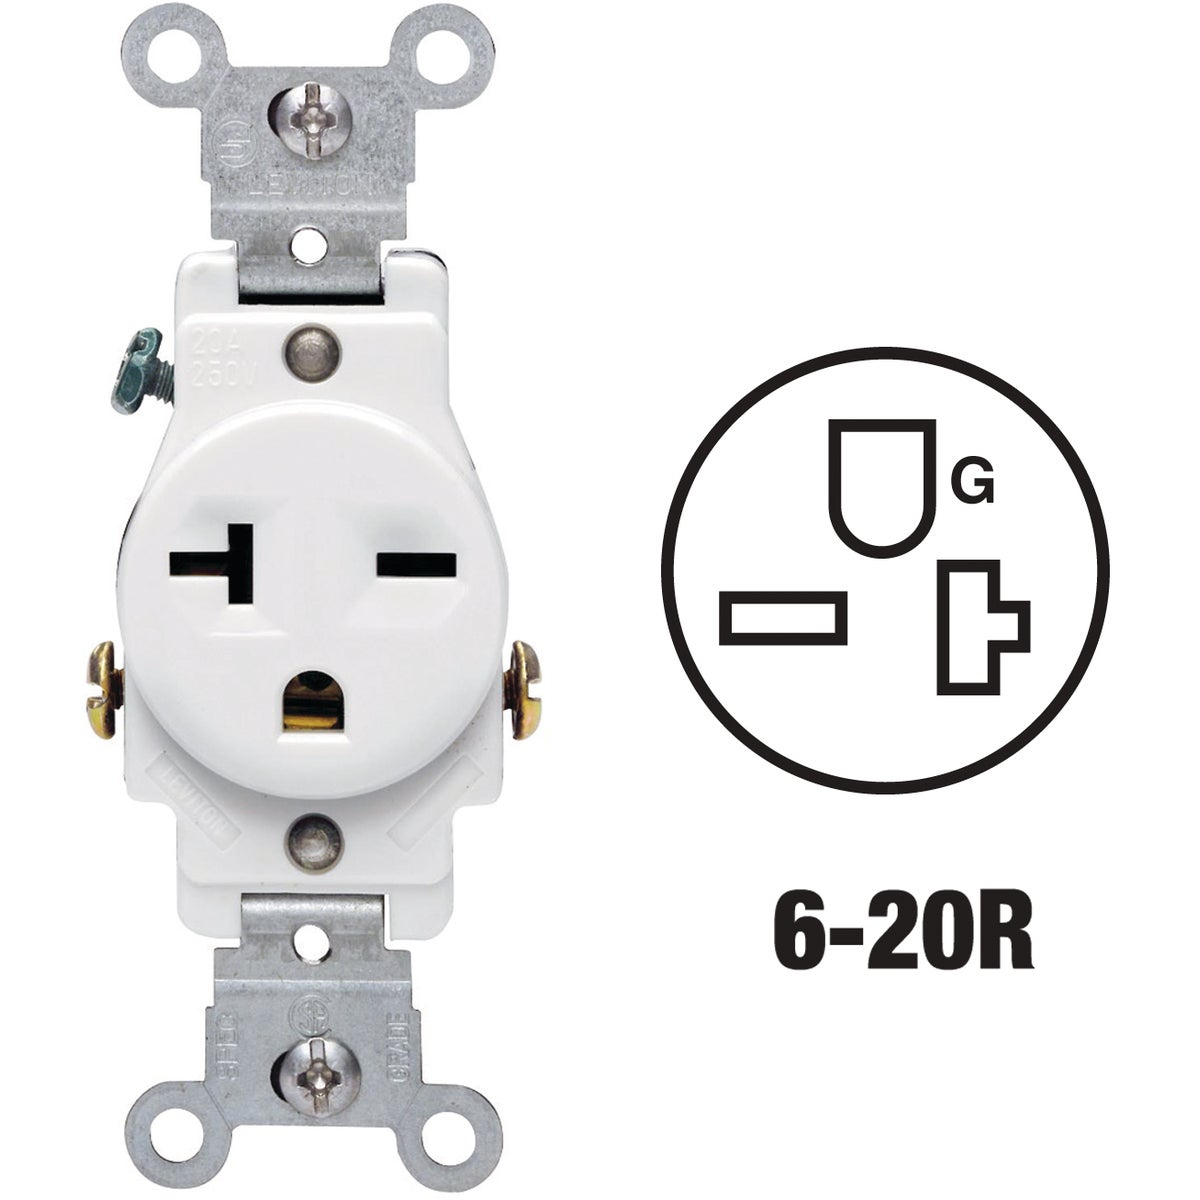 WHT SINGLE OUTLET - S02-05821-WSP by Leviton Mfg Co